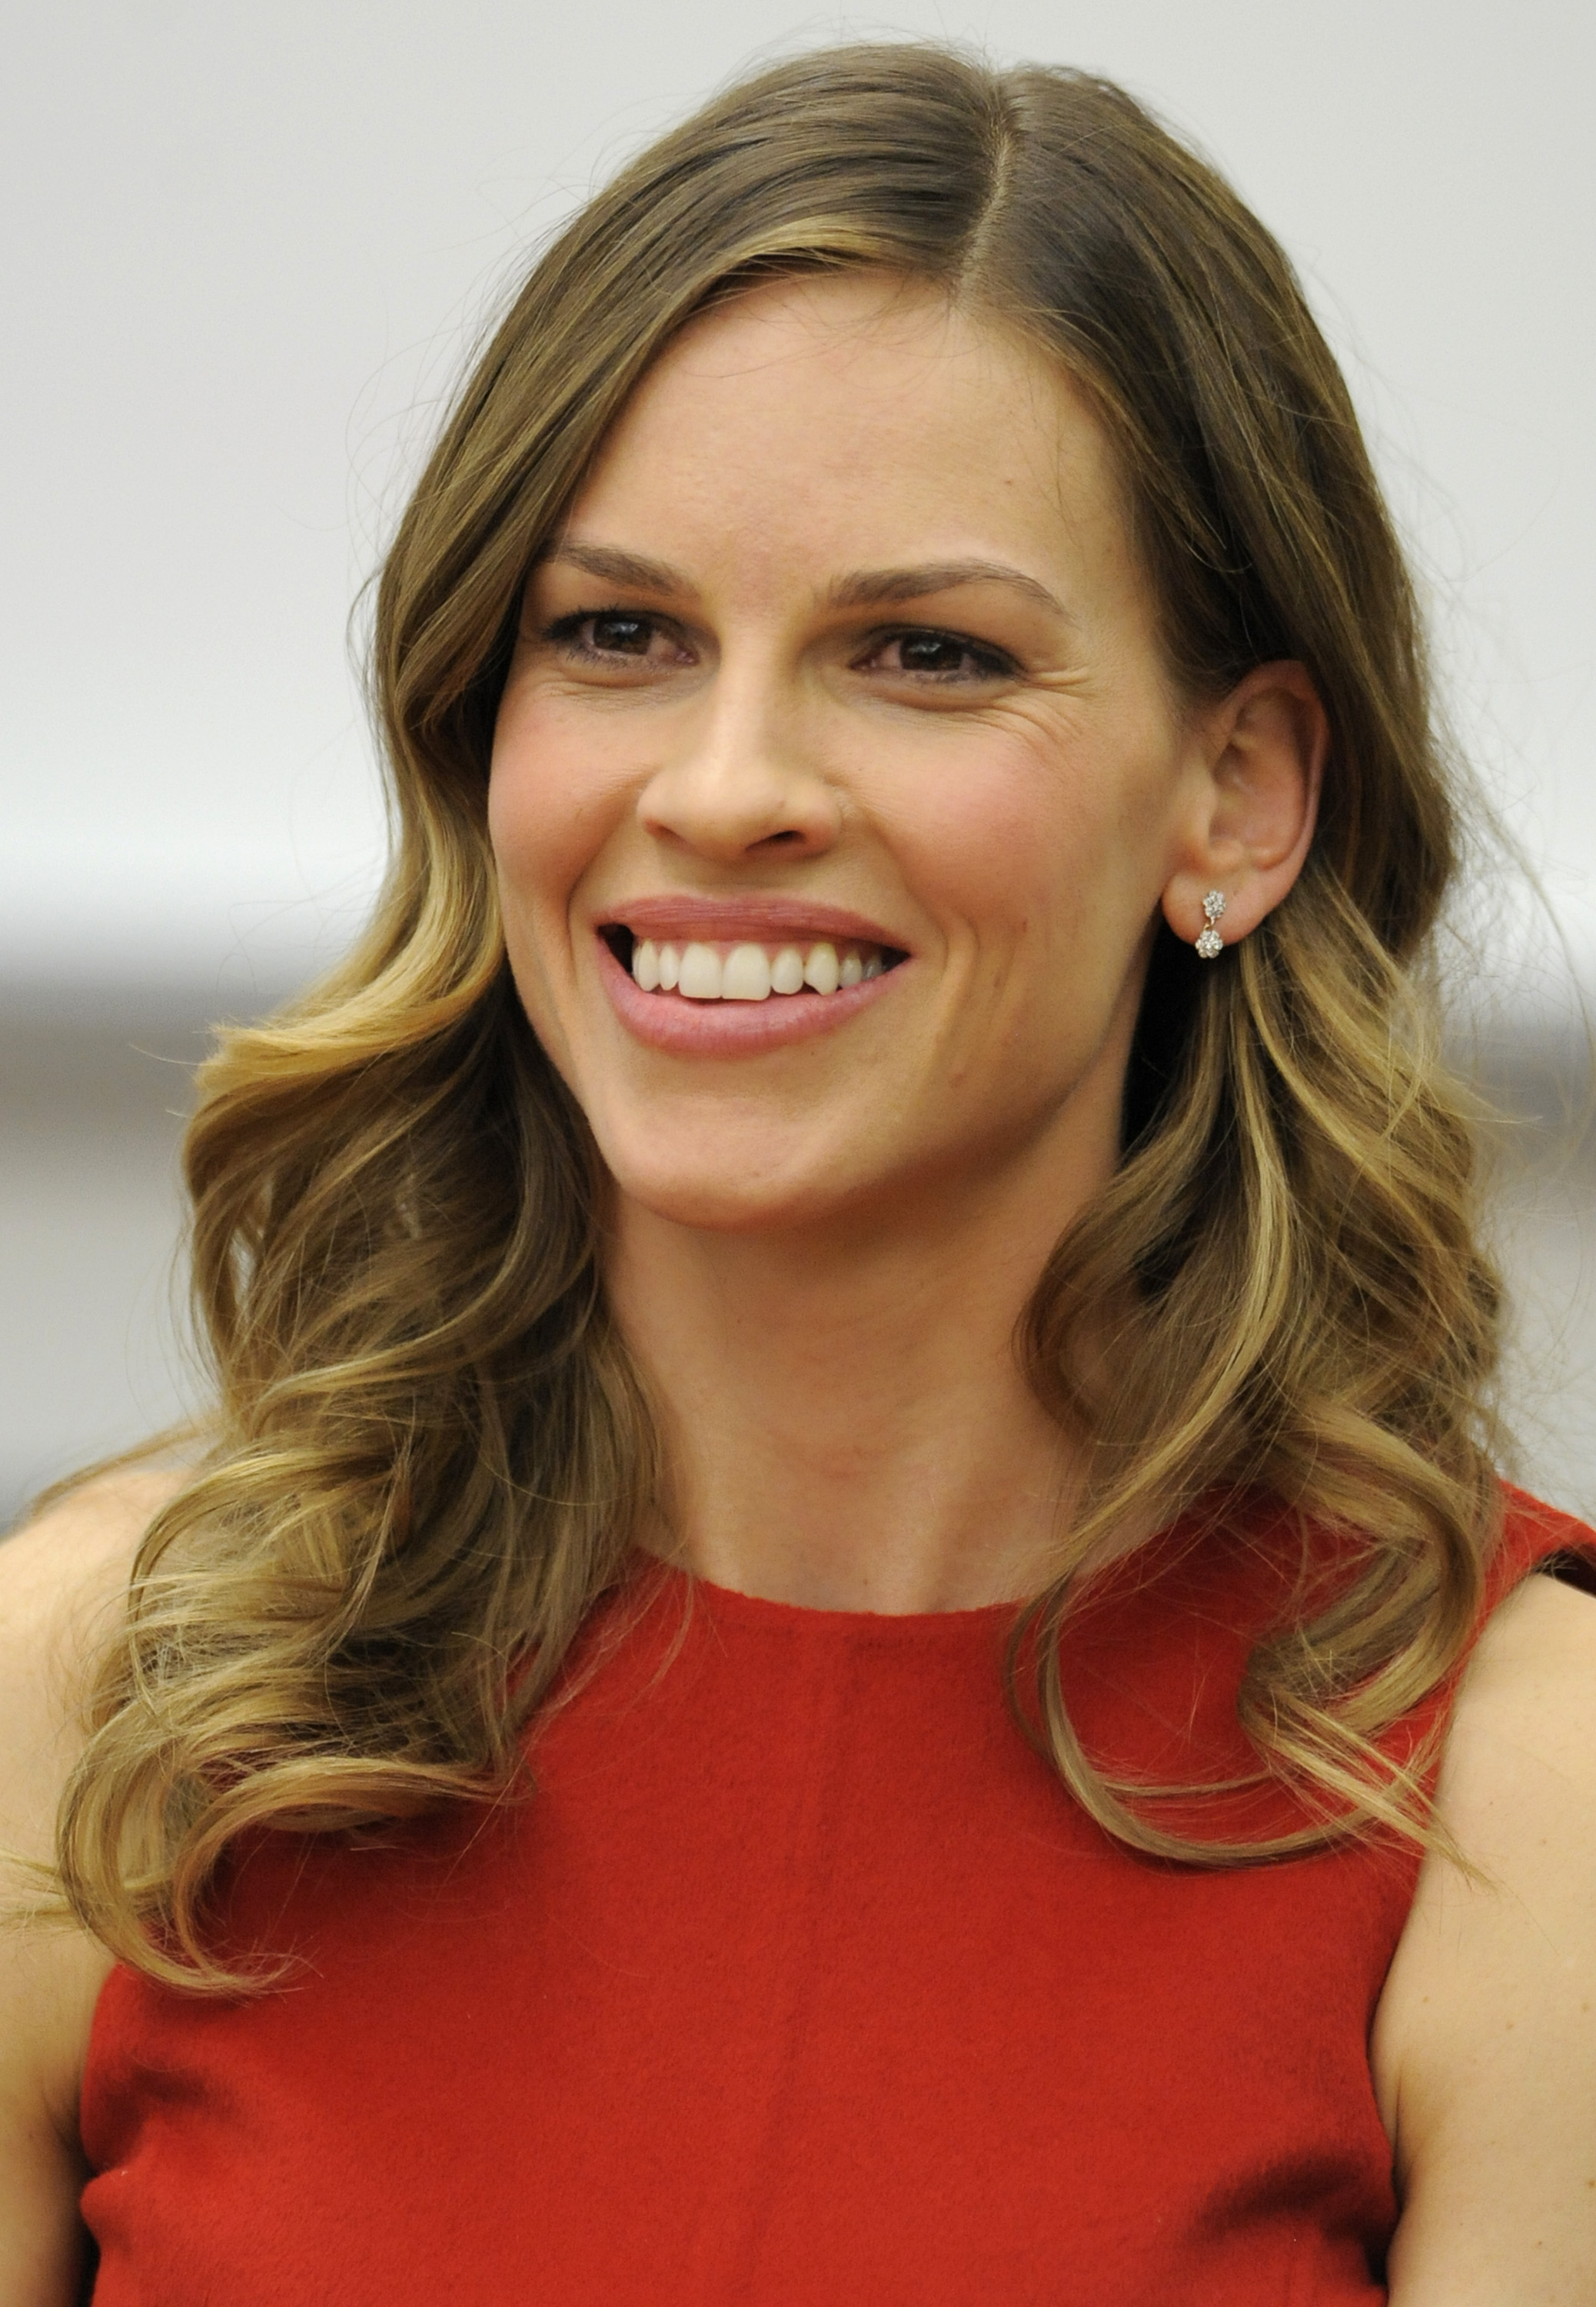 Hilary Swank Backgrounds, Compatible - PC, Mobile, Gadgets| 2076x3000 px